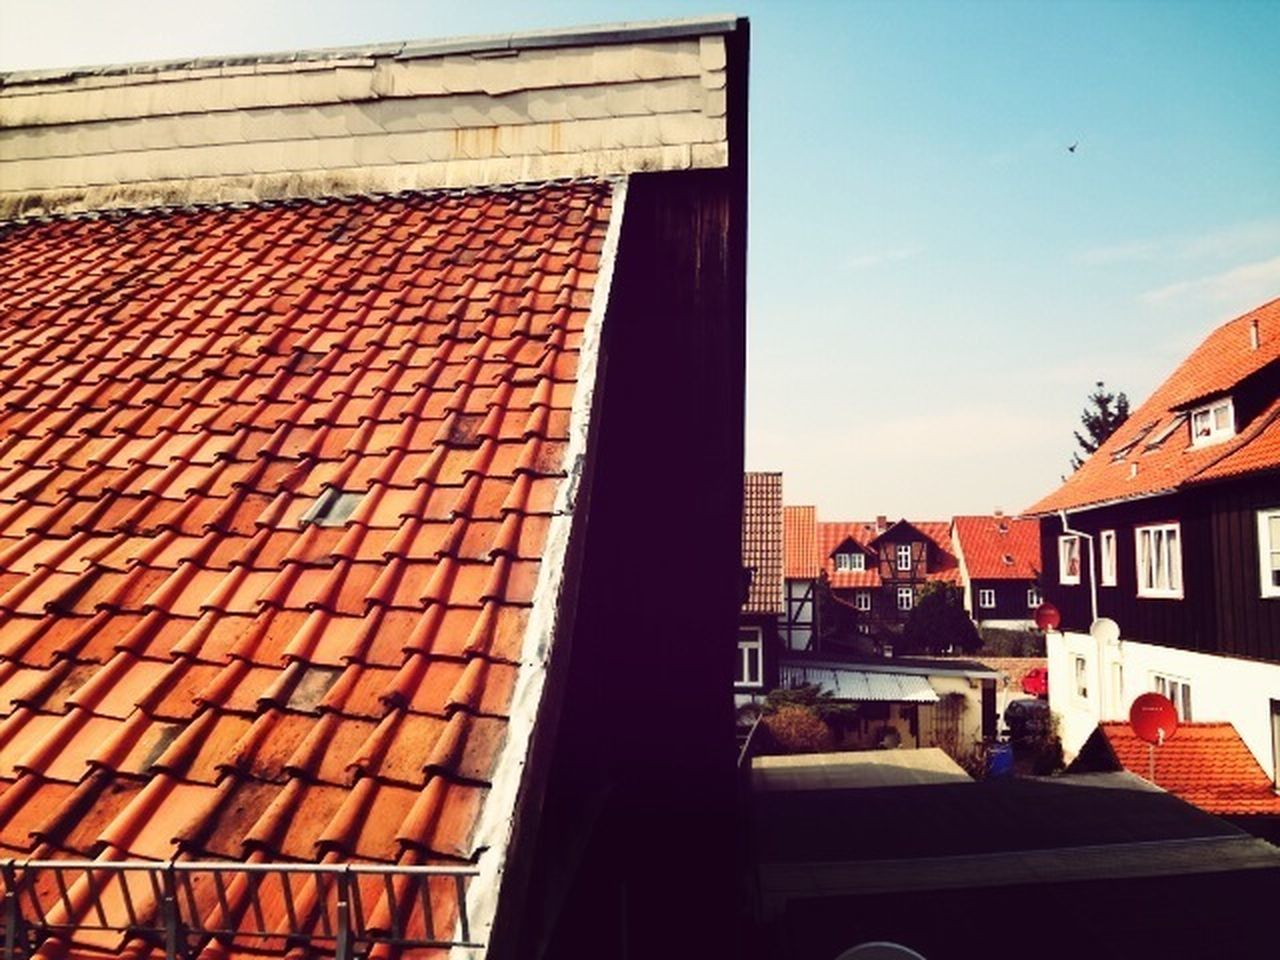 architecture, building exterior, built structure, roof, no people, outdoors, day, tiled roof, sky, city